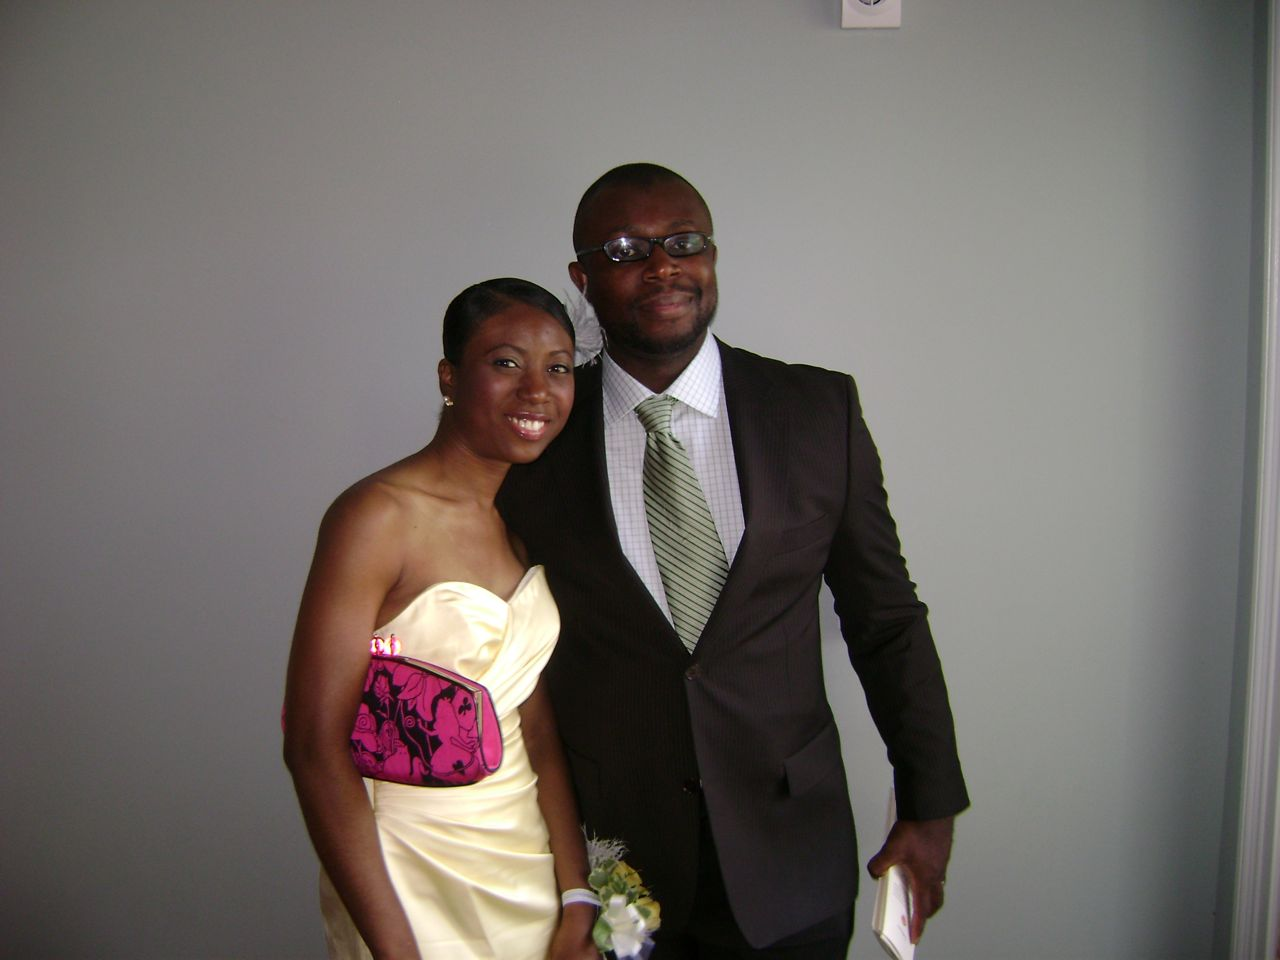 Folake and Mashood Wedding 2009 - 02